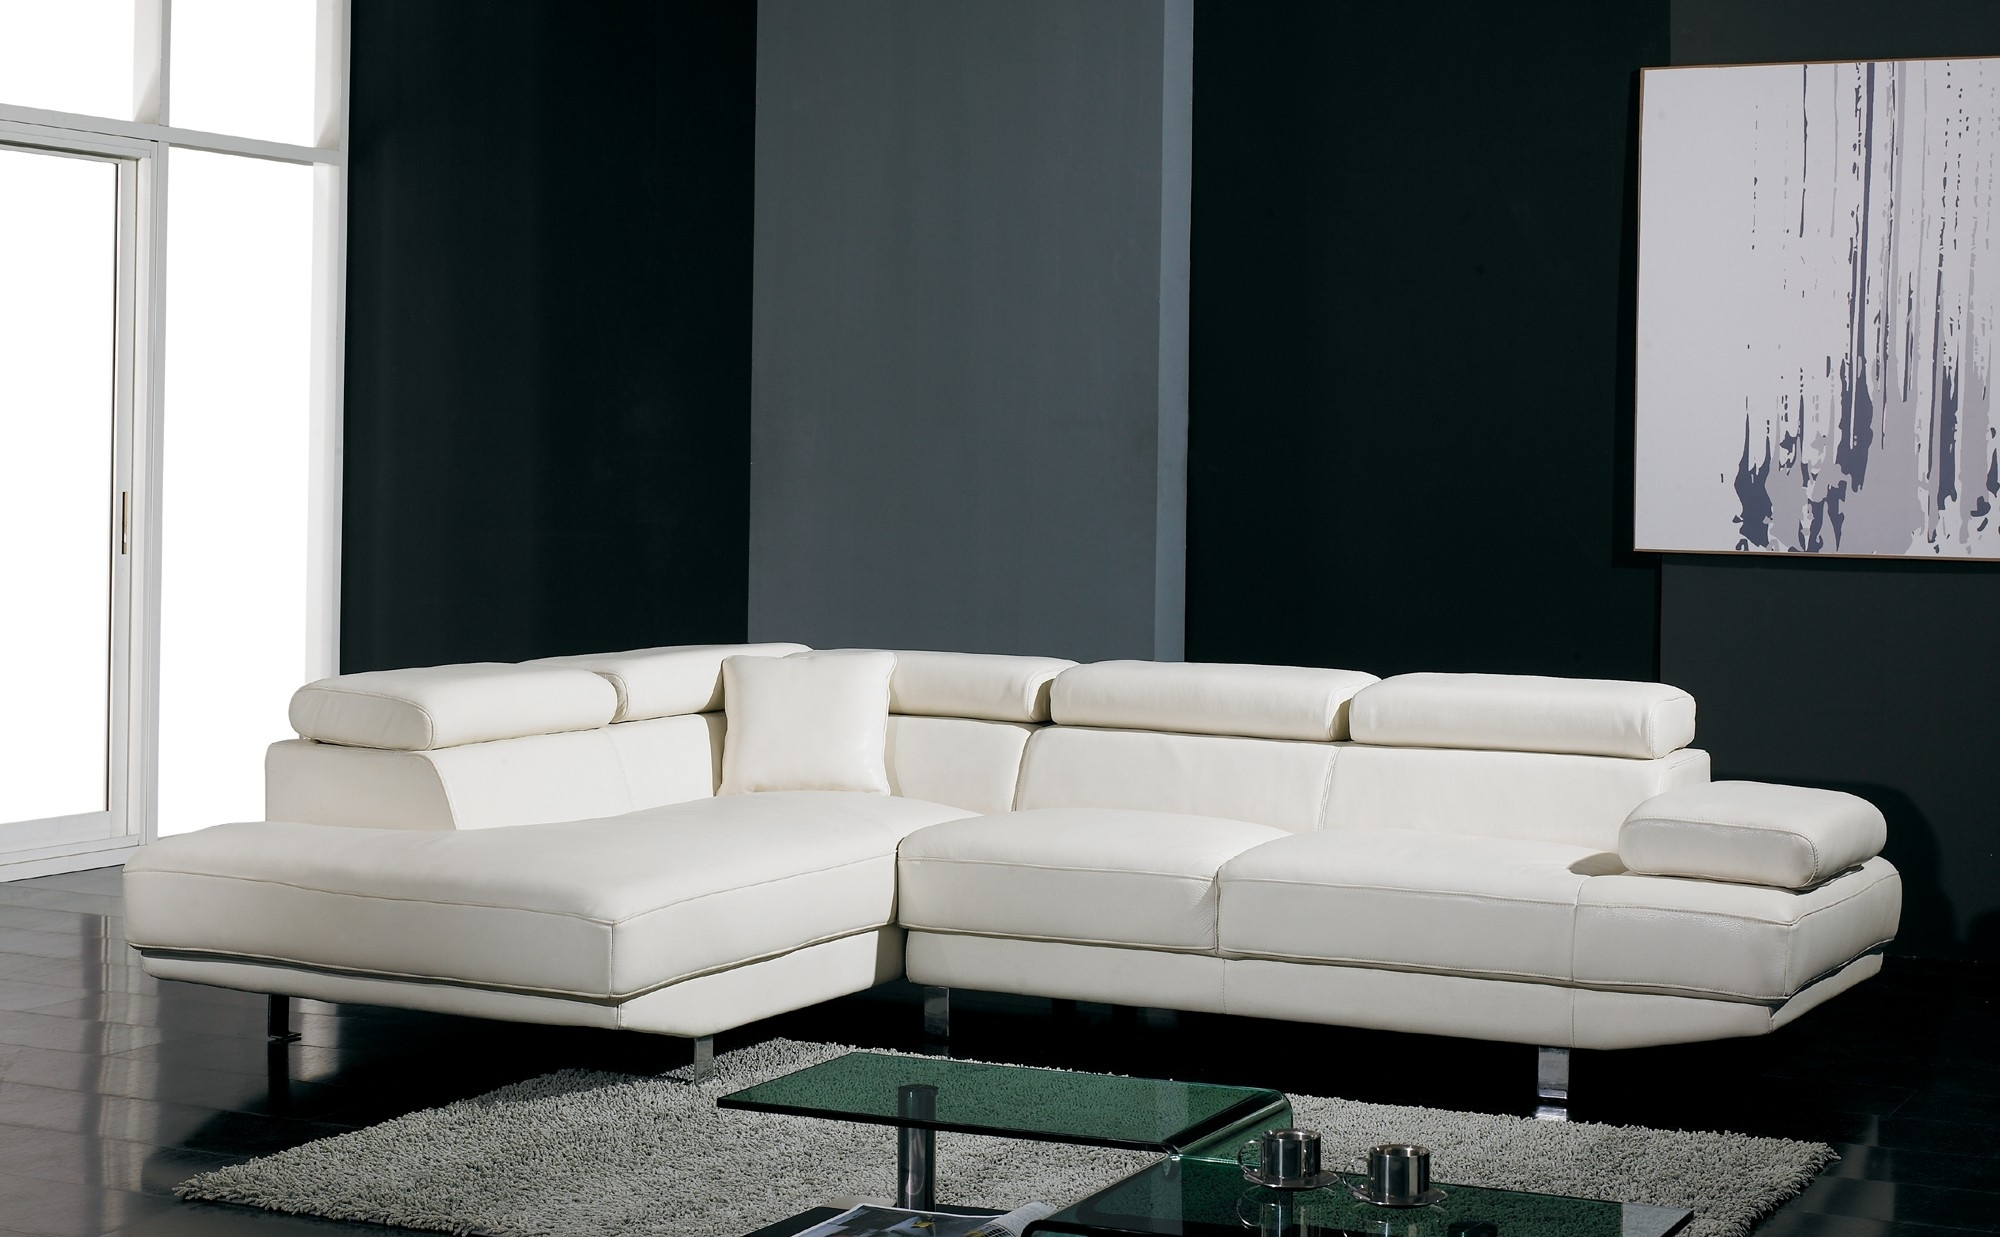 Contemporary Sectional Couch Modern Sectional Sofas For Small With Favorite Contemporary Sectional Sofas (View 3 of 15)